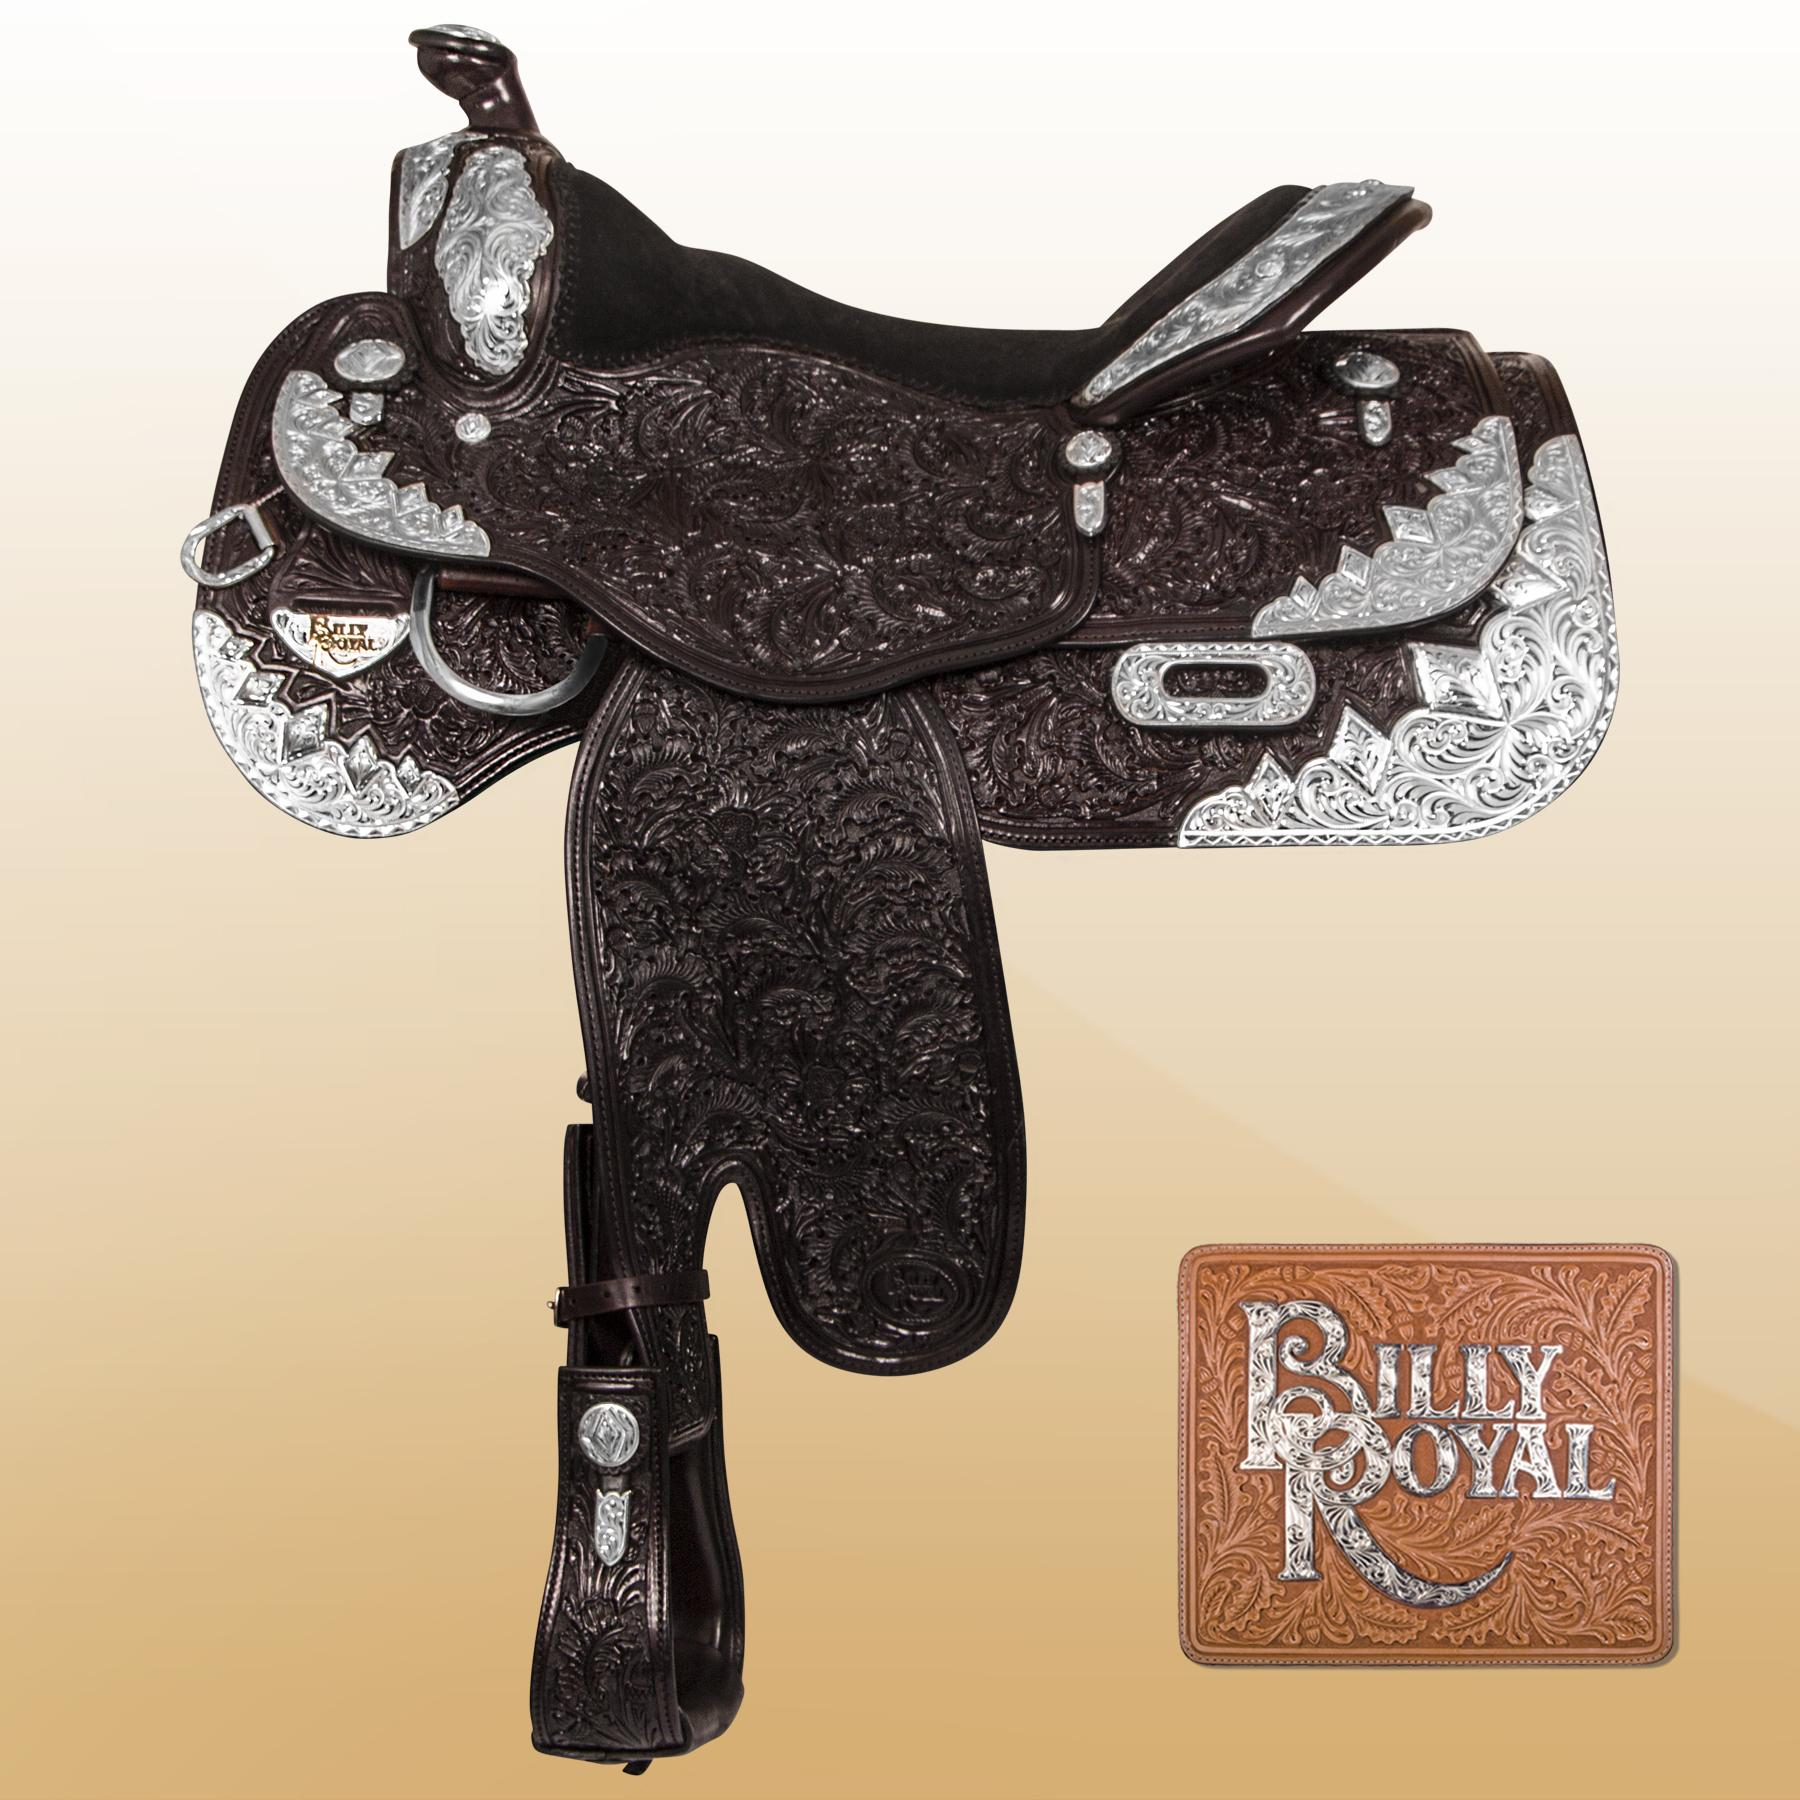 "Billy Royal® Sun Country Show Saddle 16"" (LIGHT OIL)"